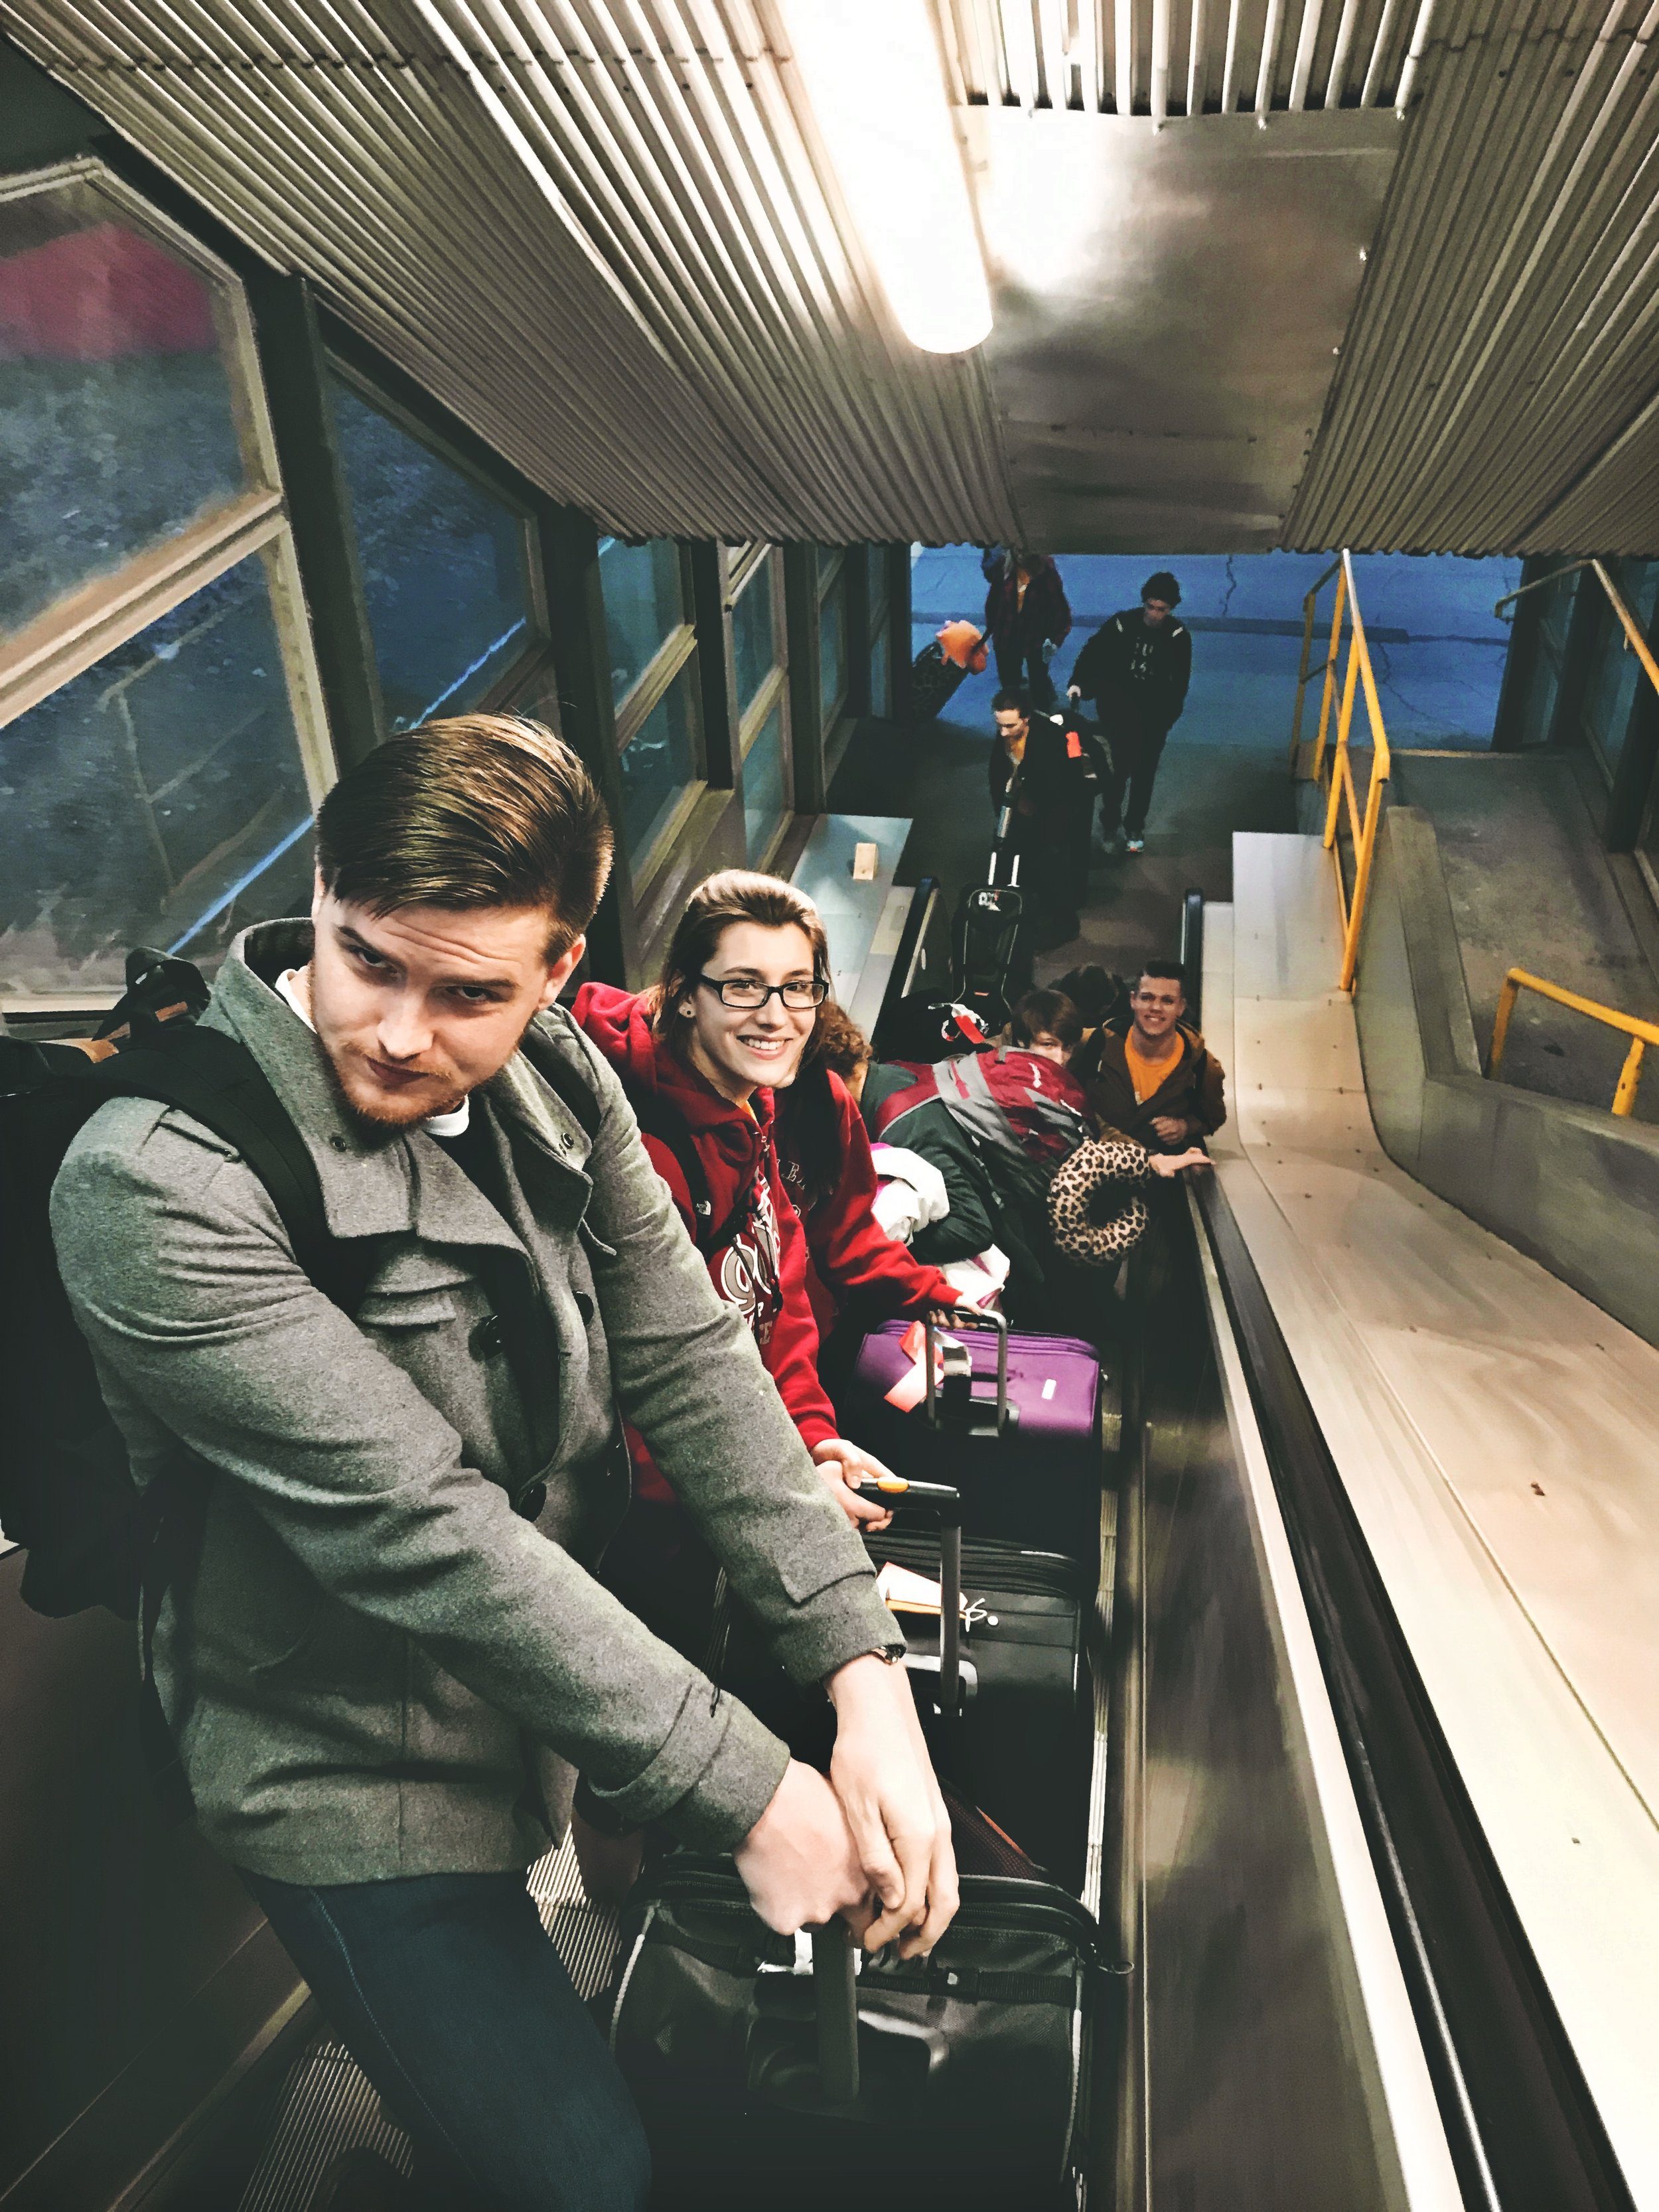 Noah & Bri  (And distantly Ryan) pose as we switch trains